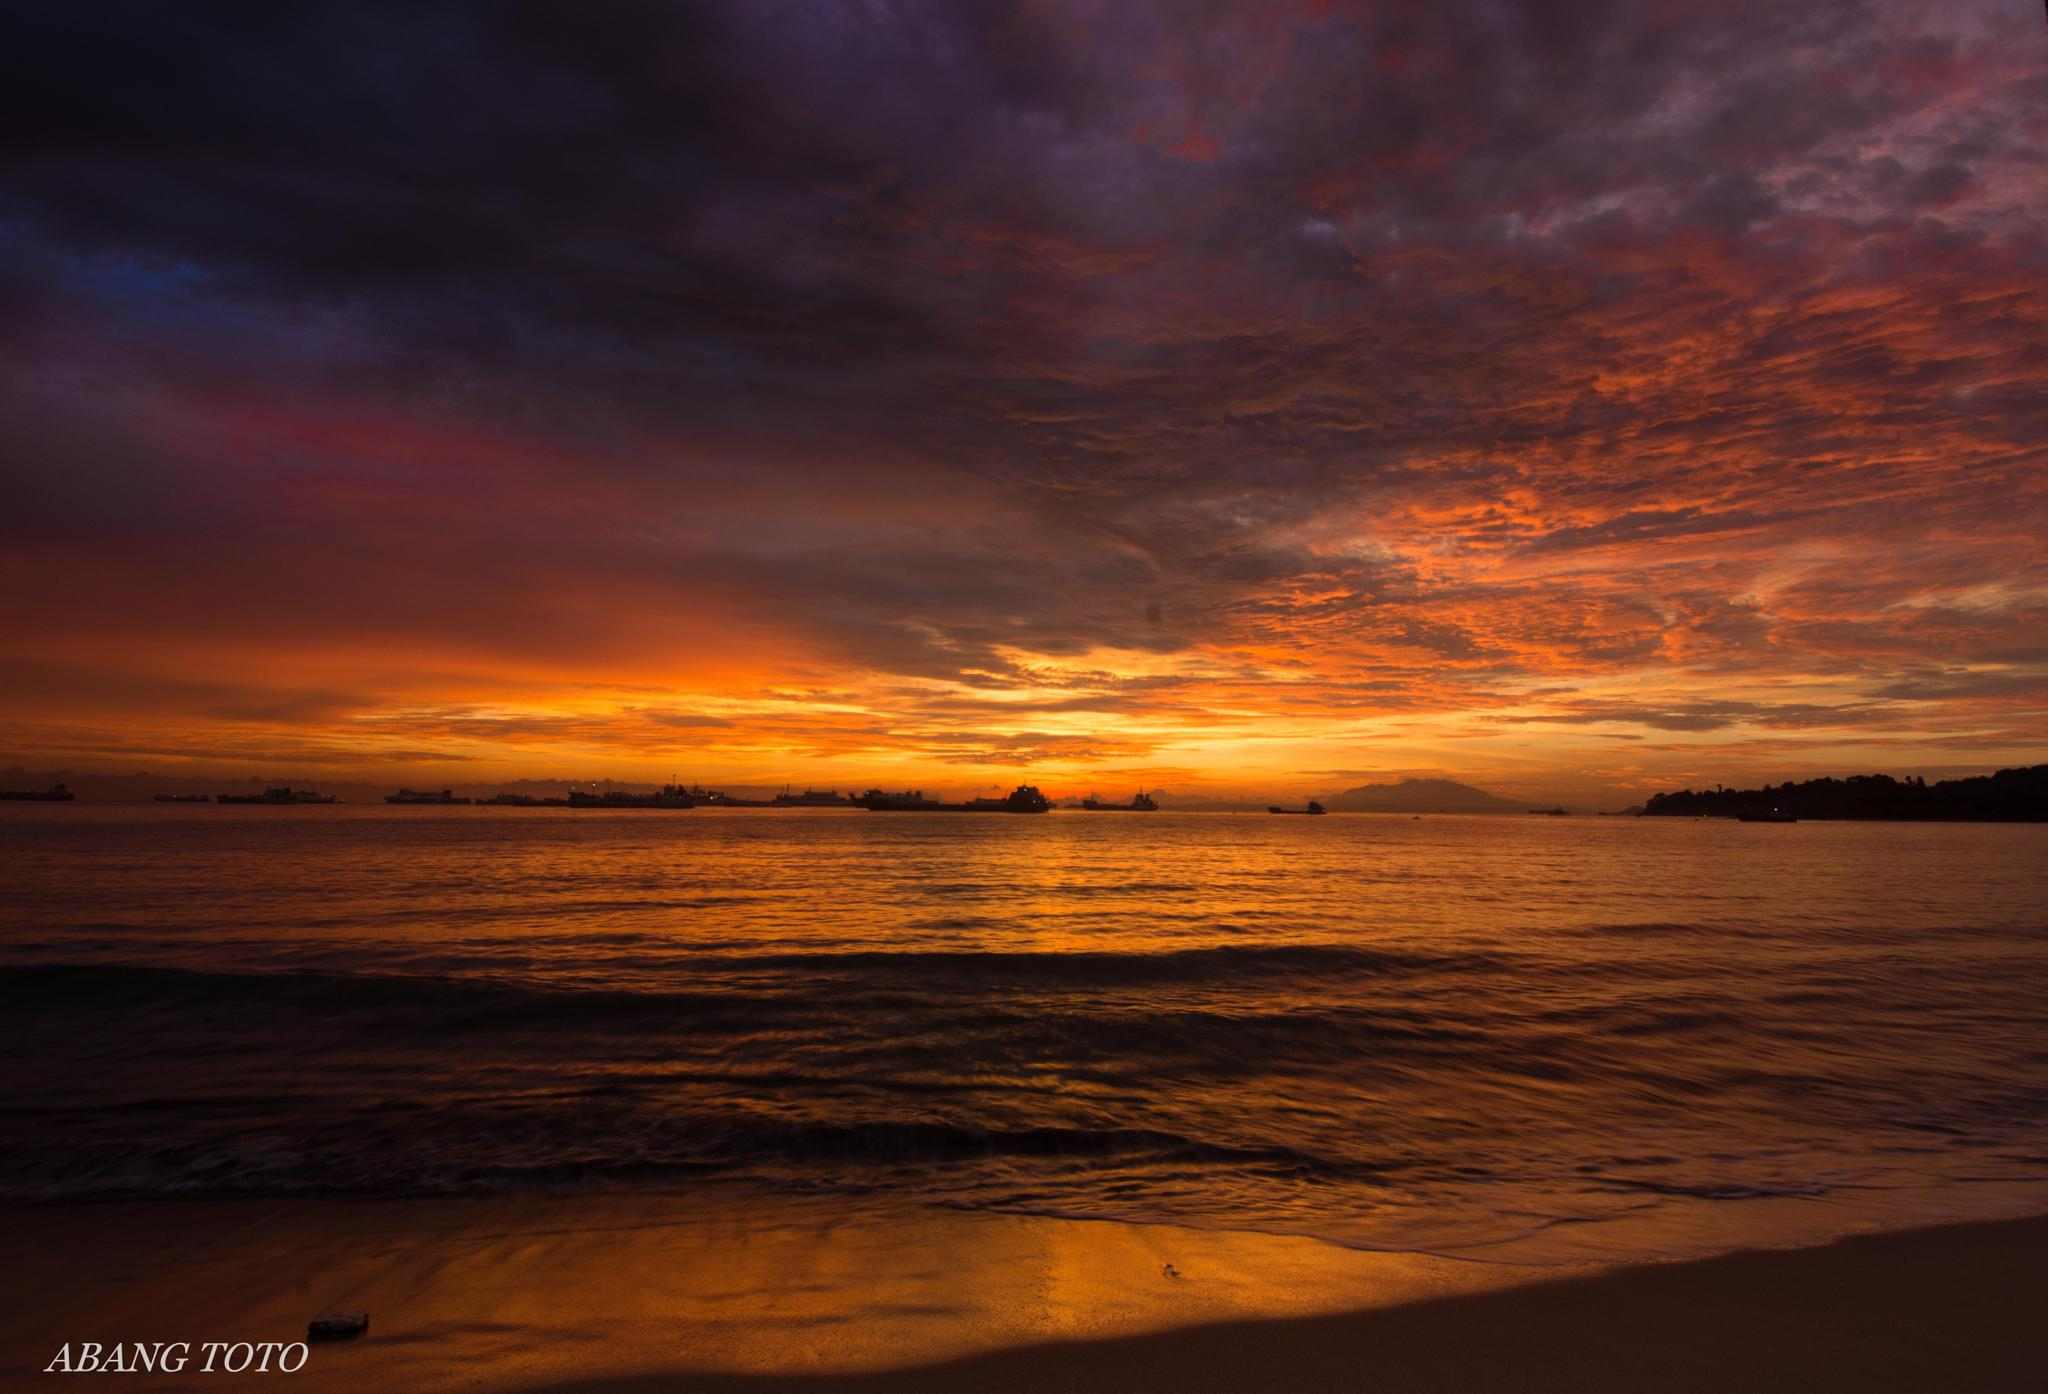 Untitled by Abang Toto